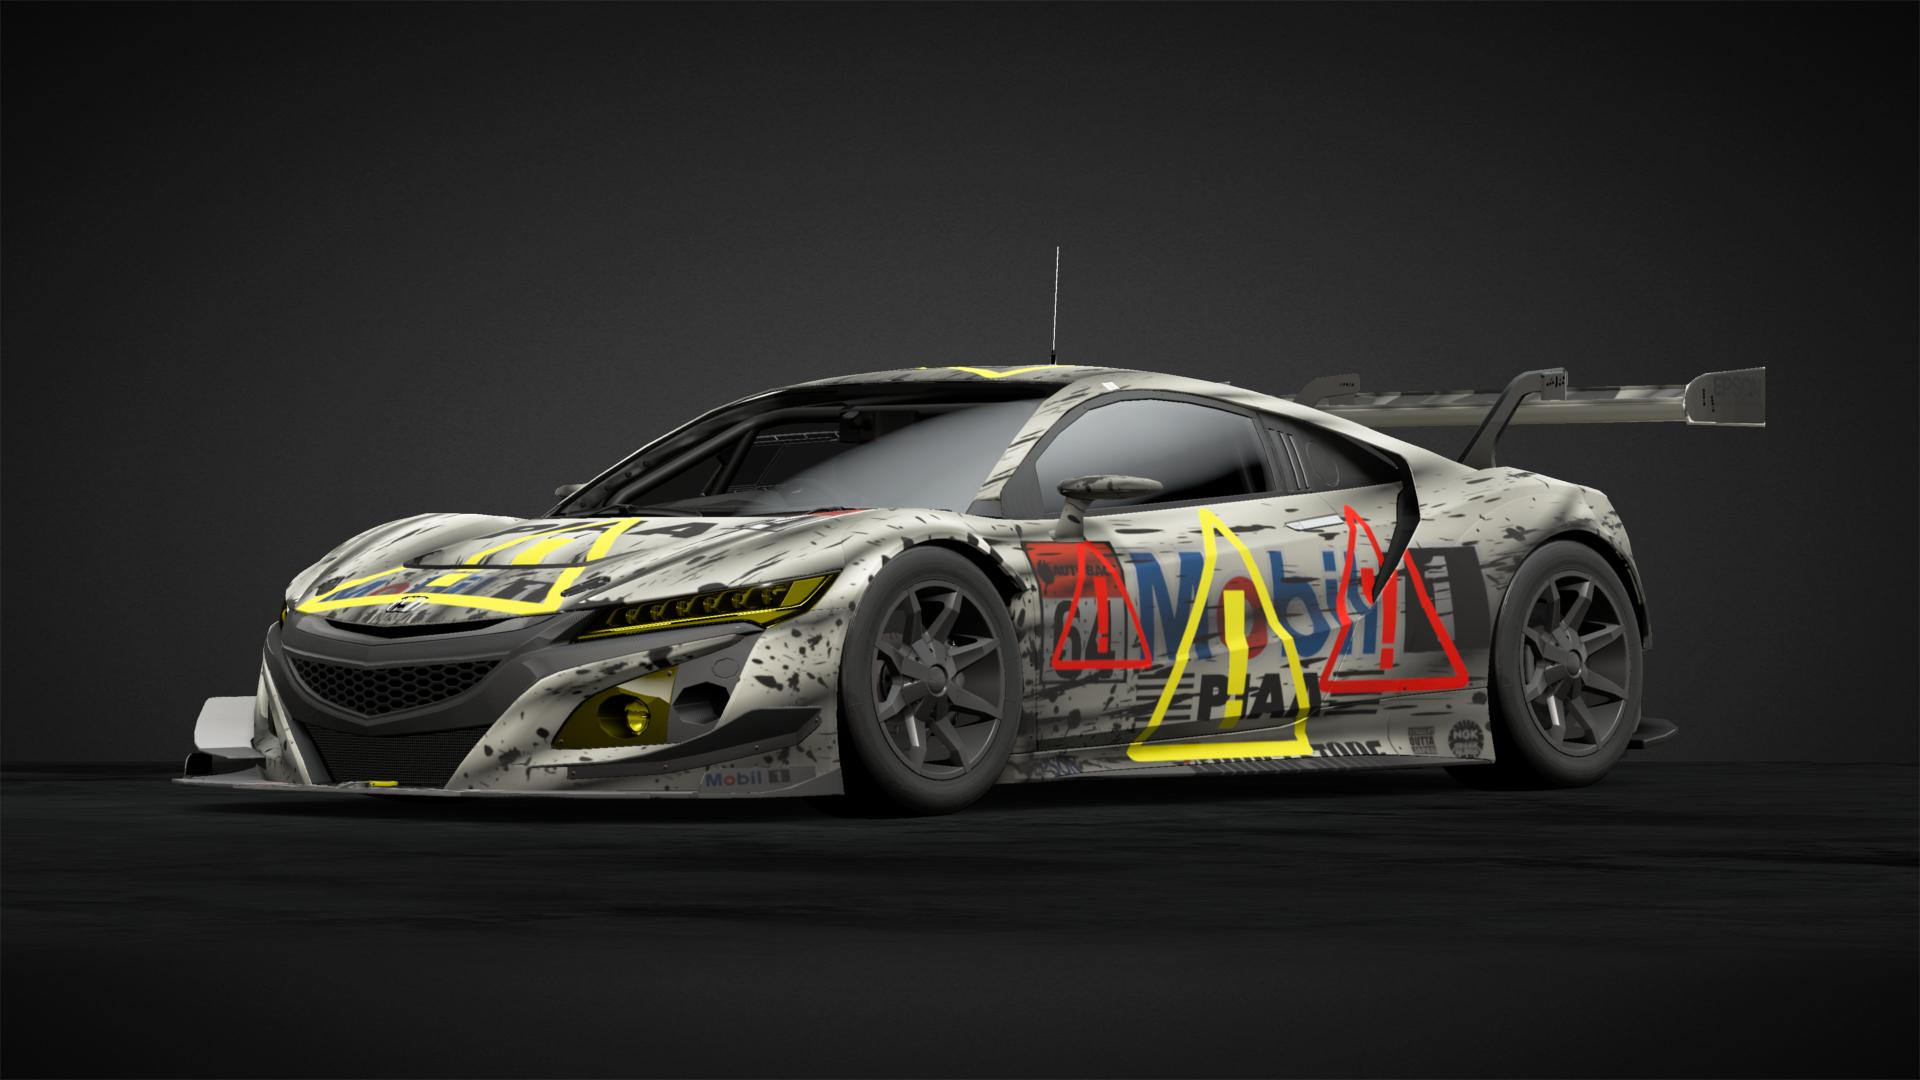 Mobil 1 nsx used car livery by kramenboer community gran turismo sport gt1 toyota chaser race mod